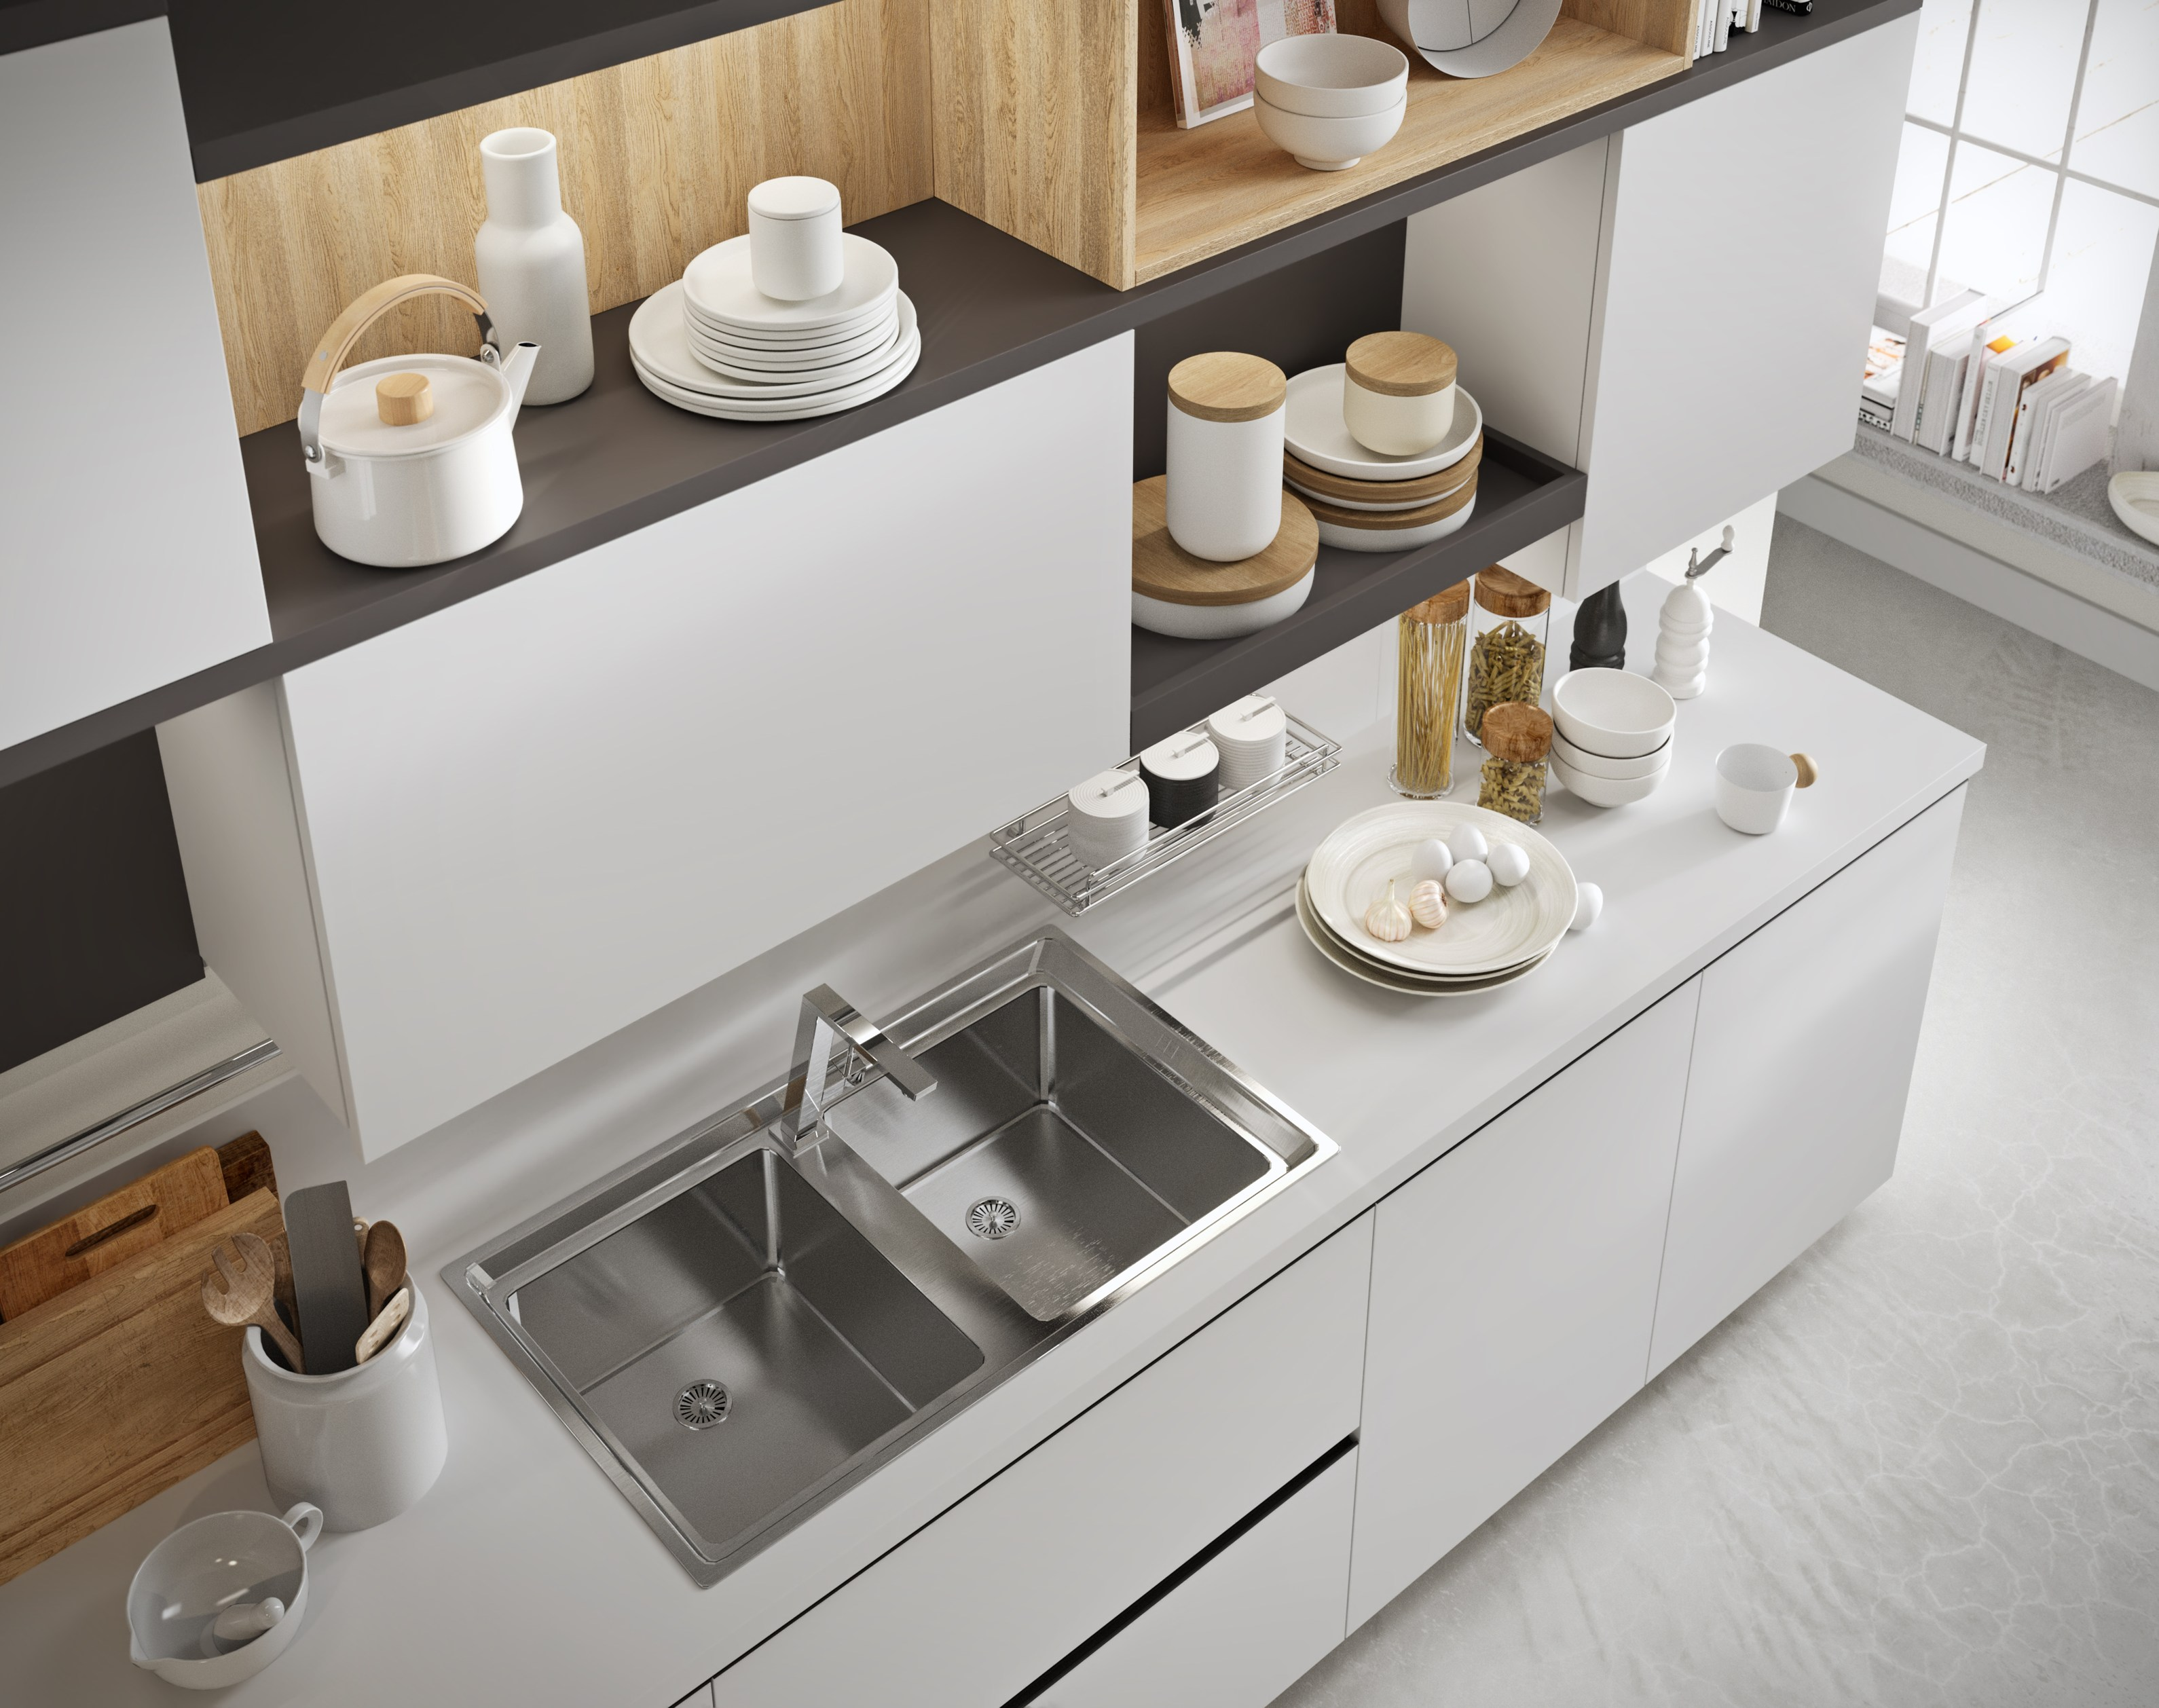 Fitted kitchen with integrated handles joy by snaidero design snaidero for Mercatone uno cucine classiche